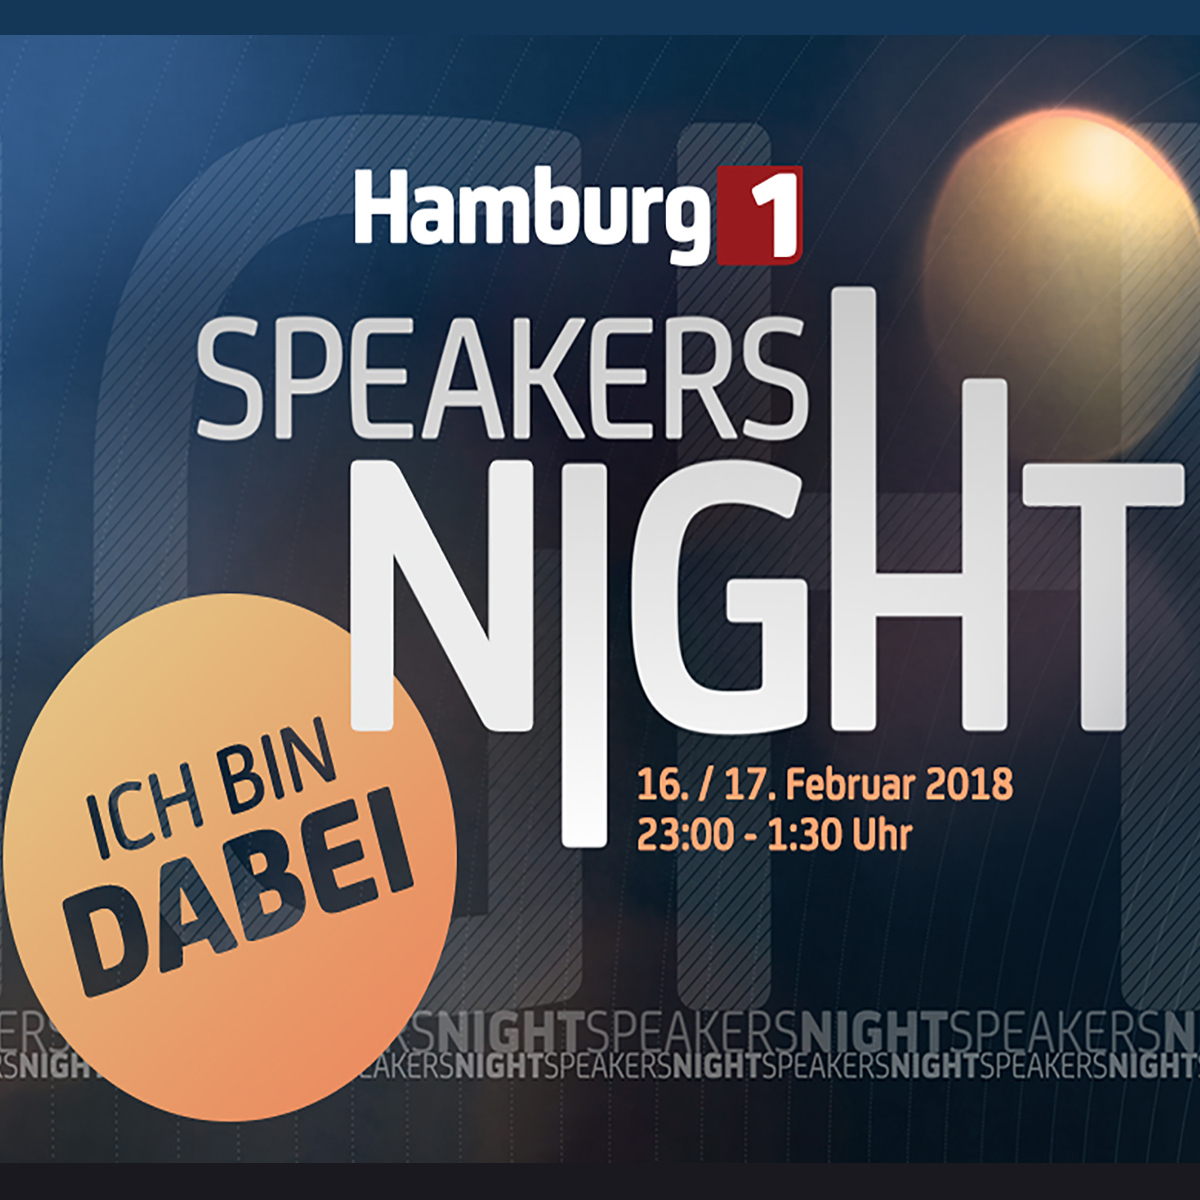 Speakernight hamburg 1